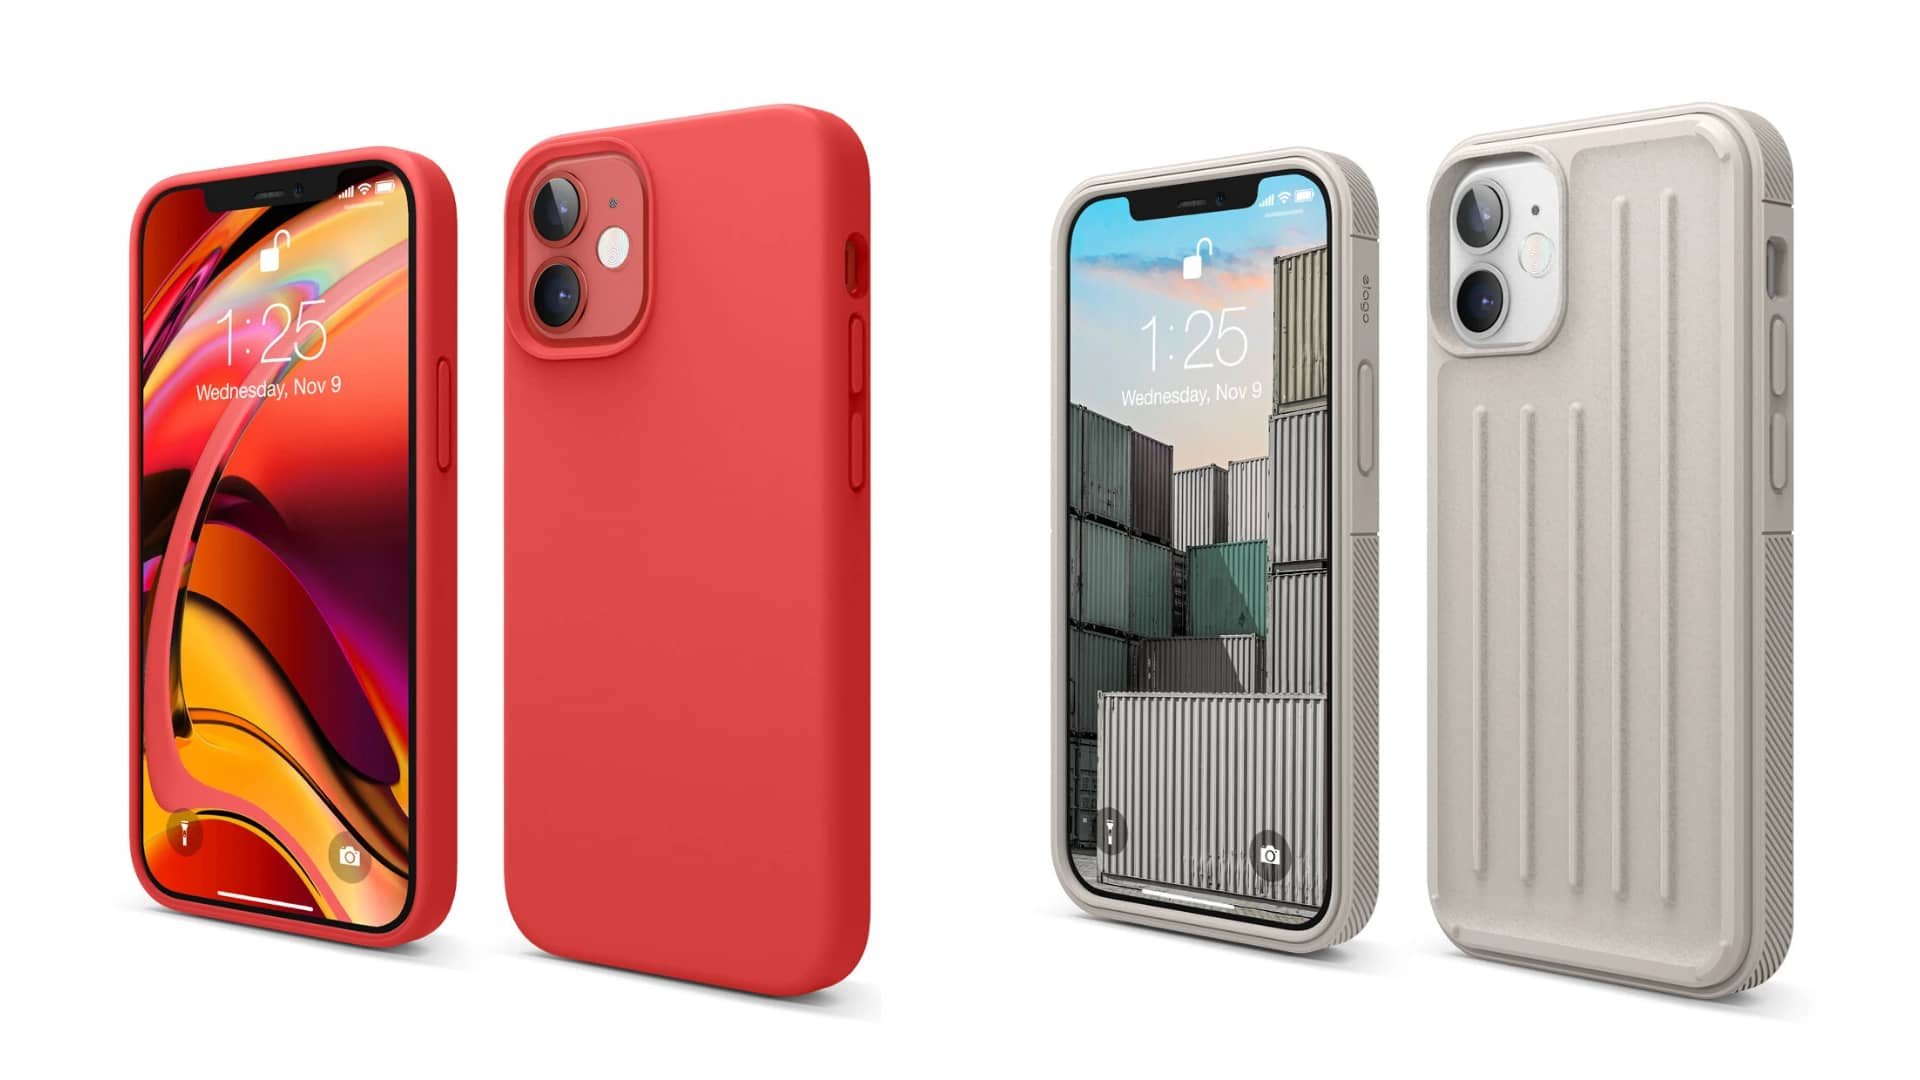 Elago cases offer great iPhone 12 protection at a stellar price